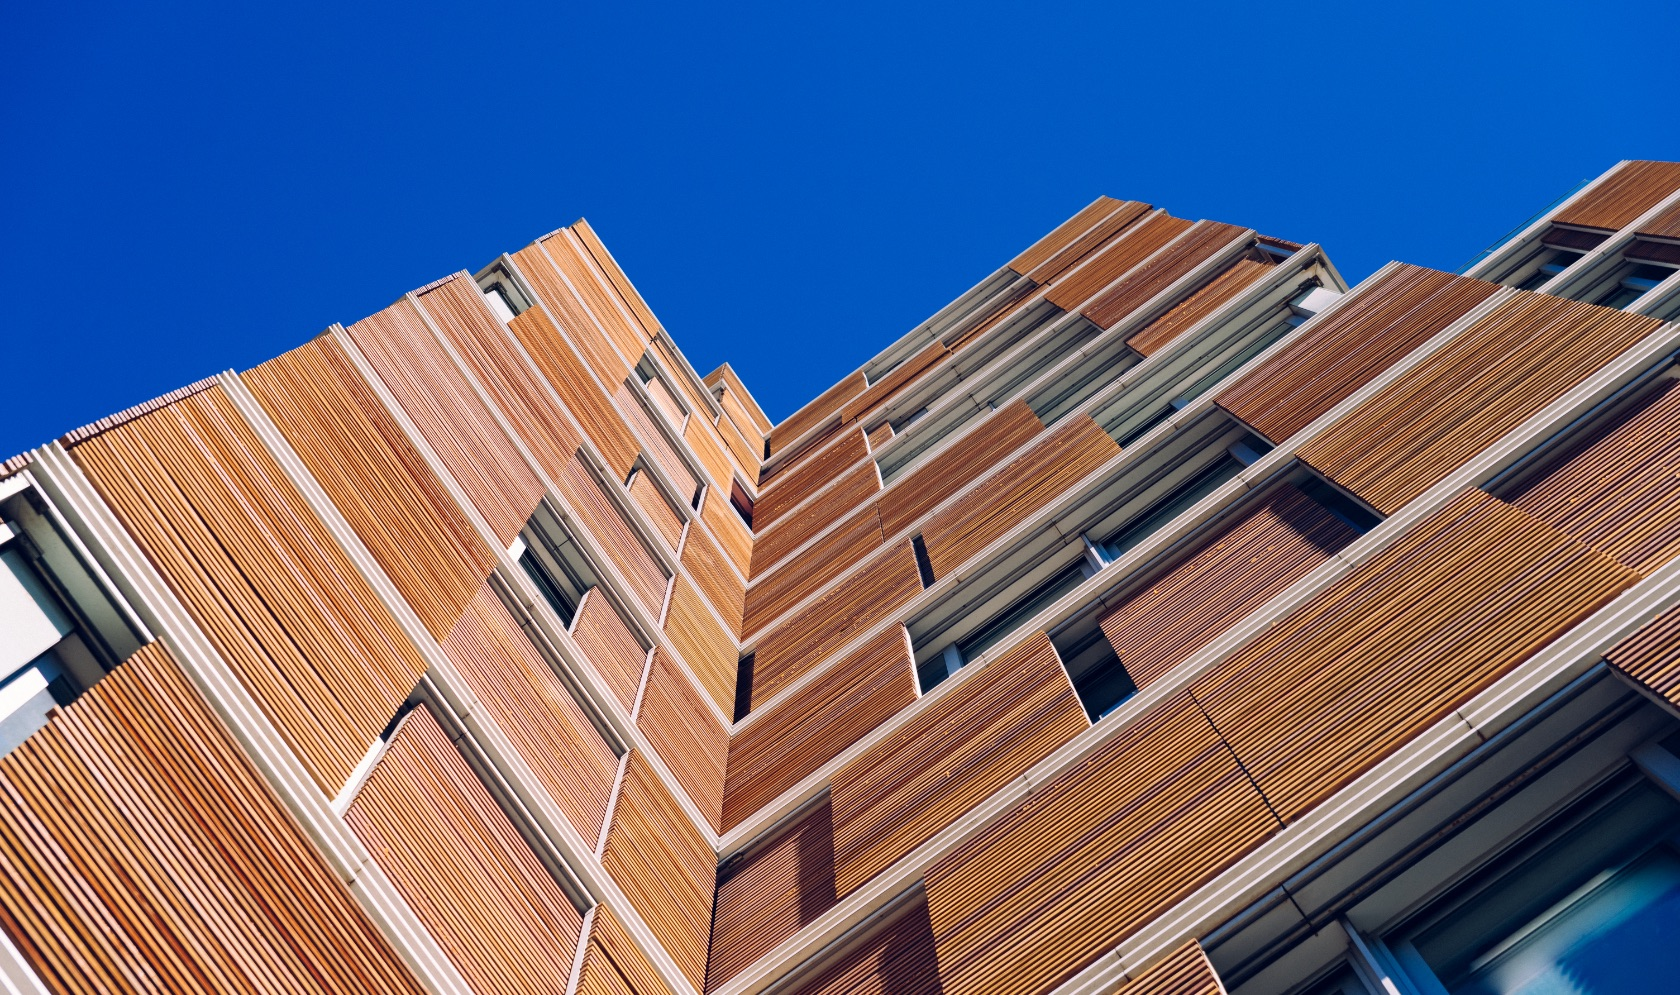 View from the floor of the facade of a modern building